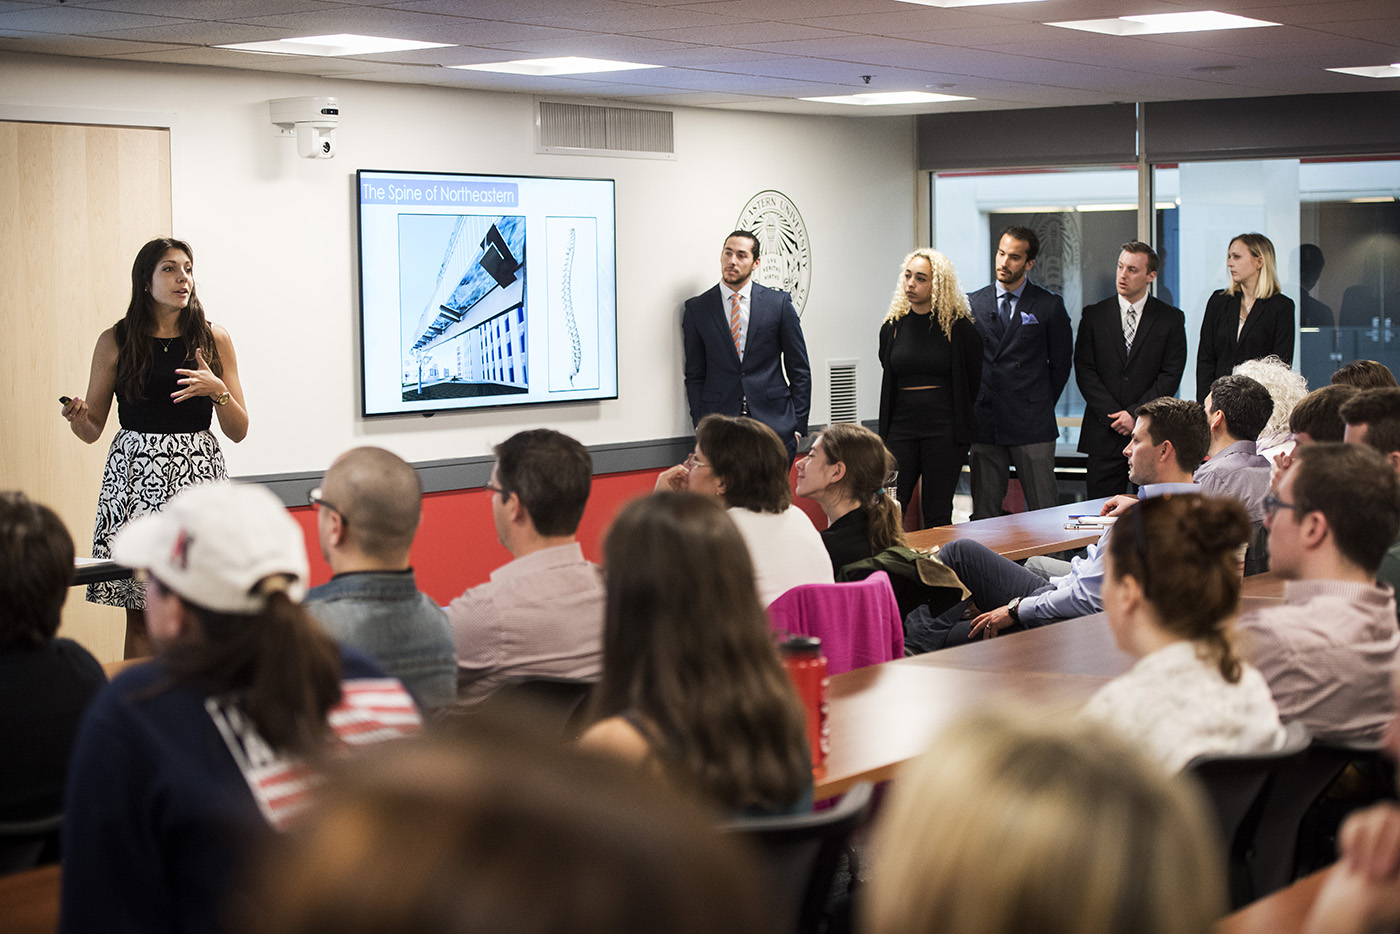 04/22/16 - BOSTON, MA. - Engineering and Arts Media Design students present their capstone project aimed at redesigning Forsyth Street in Curry Student Center on April 22, 2016. Photo by Adam Glanzman/Northeastern University